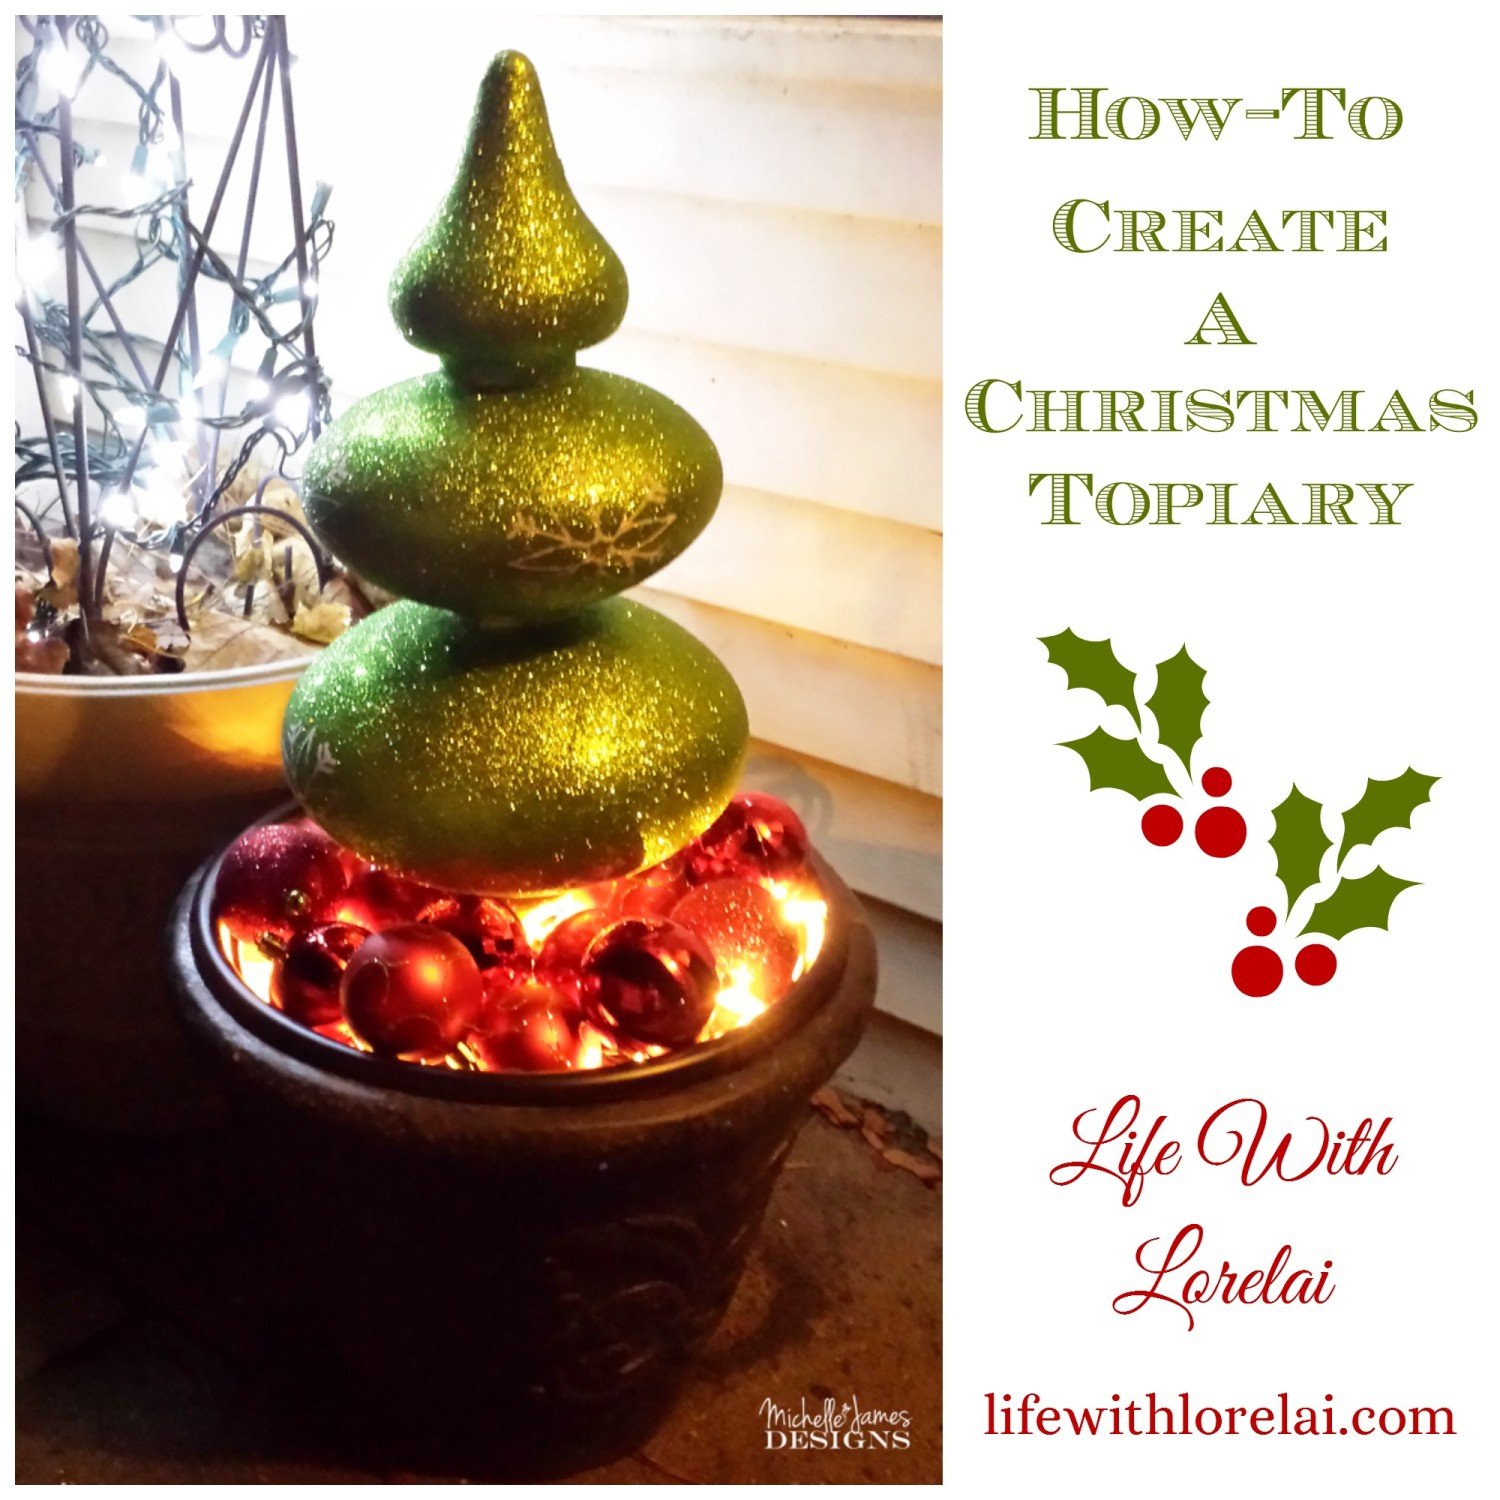 How-T-Create-Christmas-Topiary - Life With Lorelai